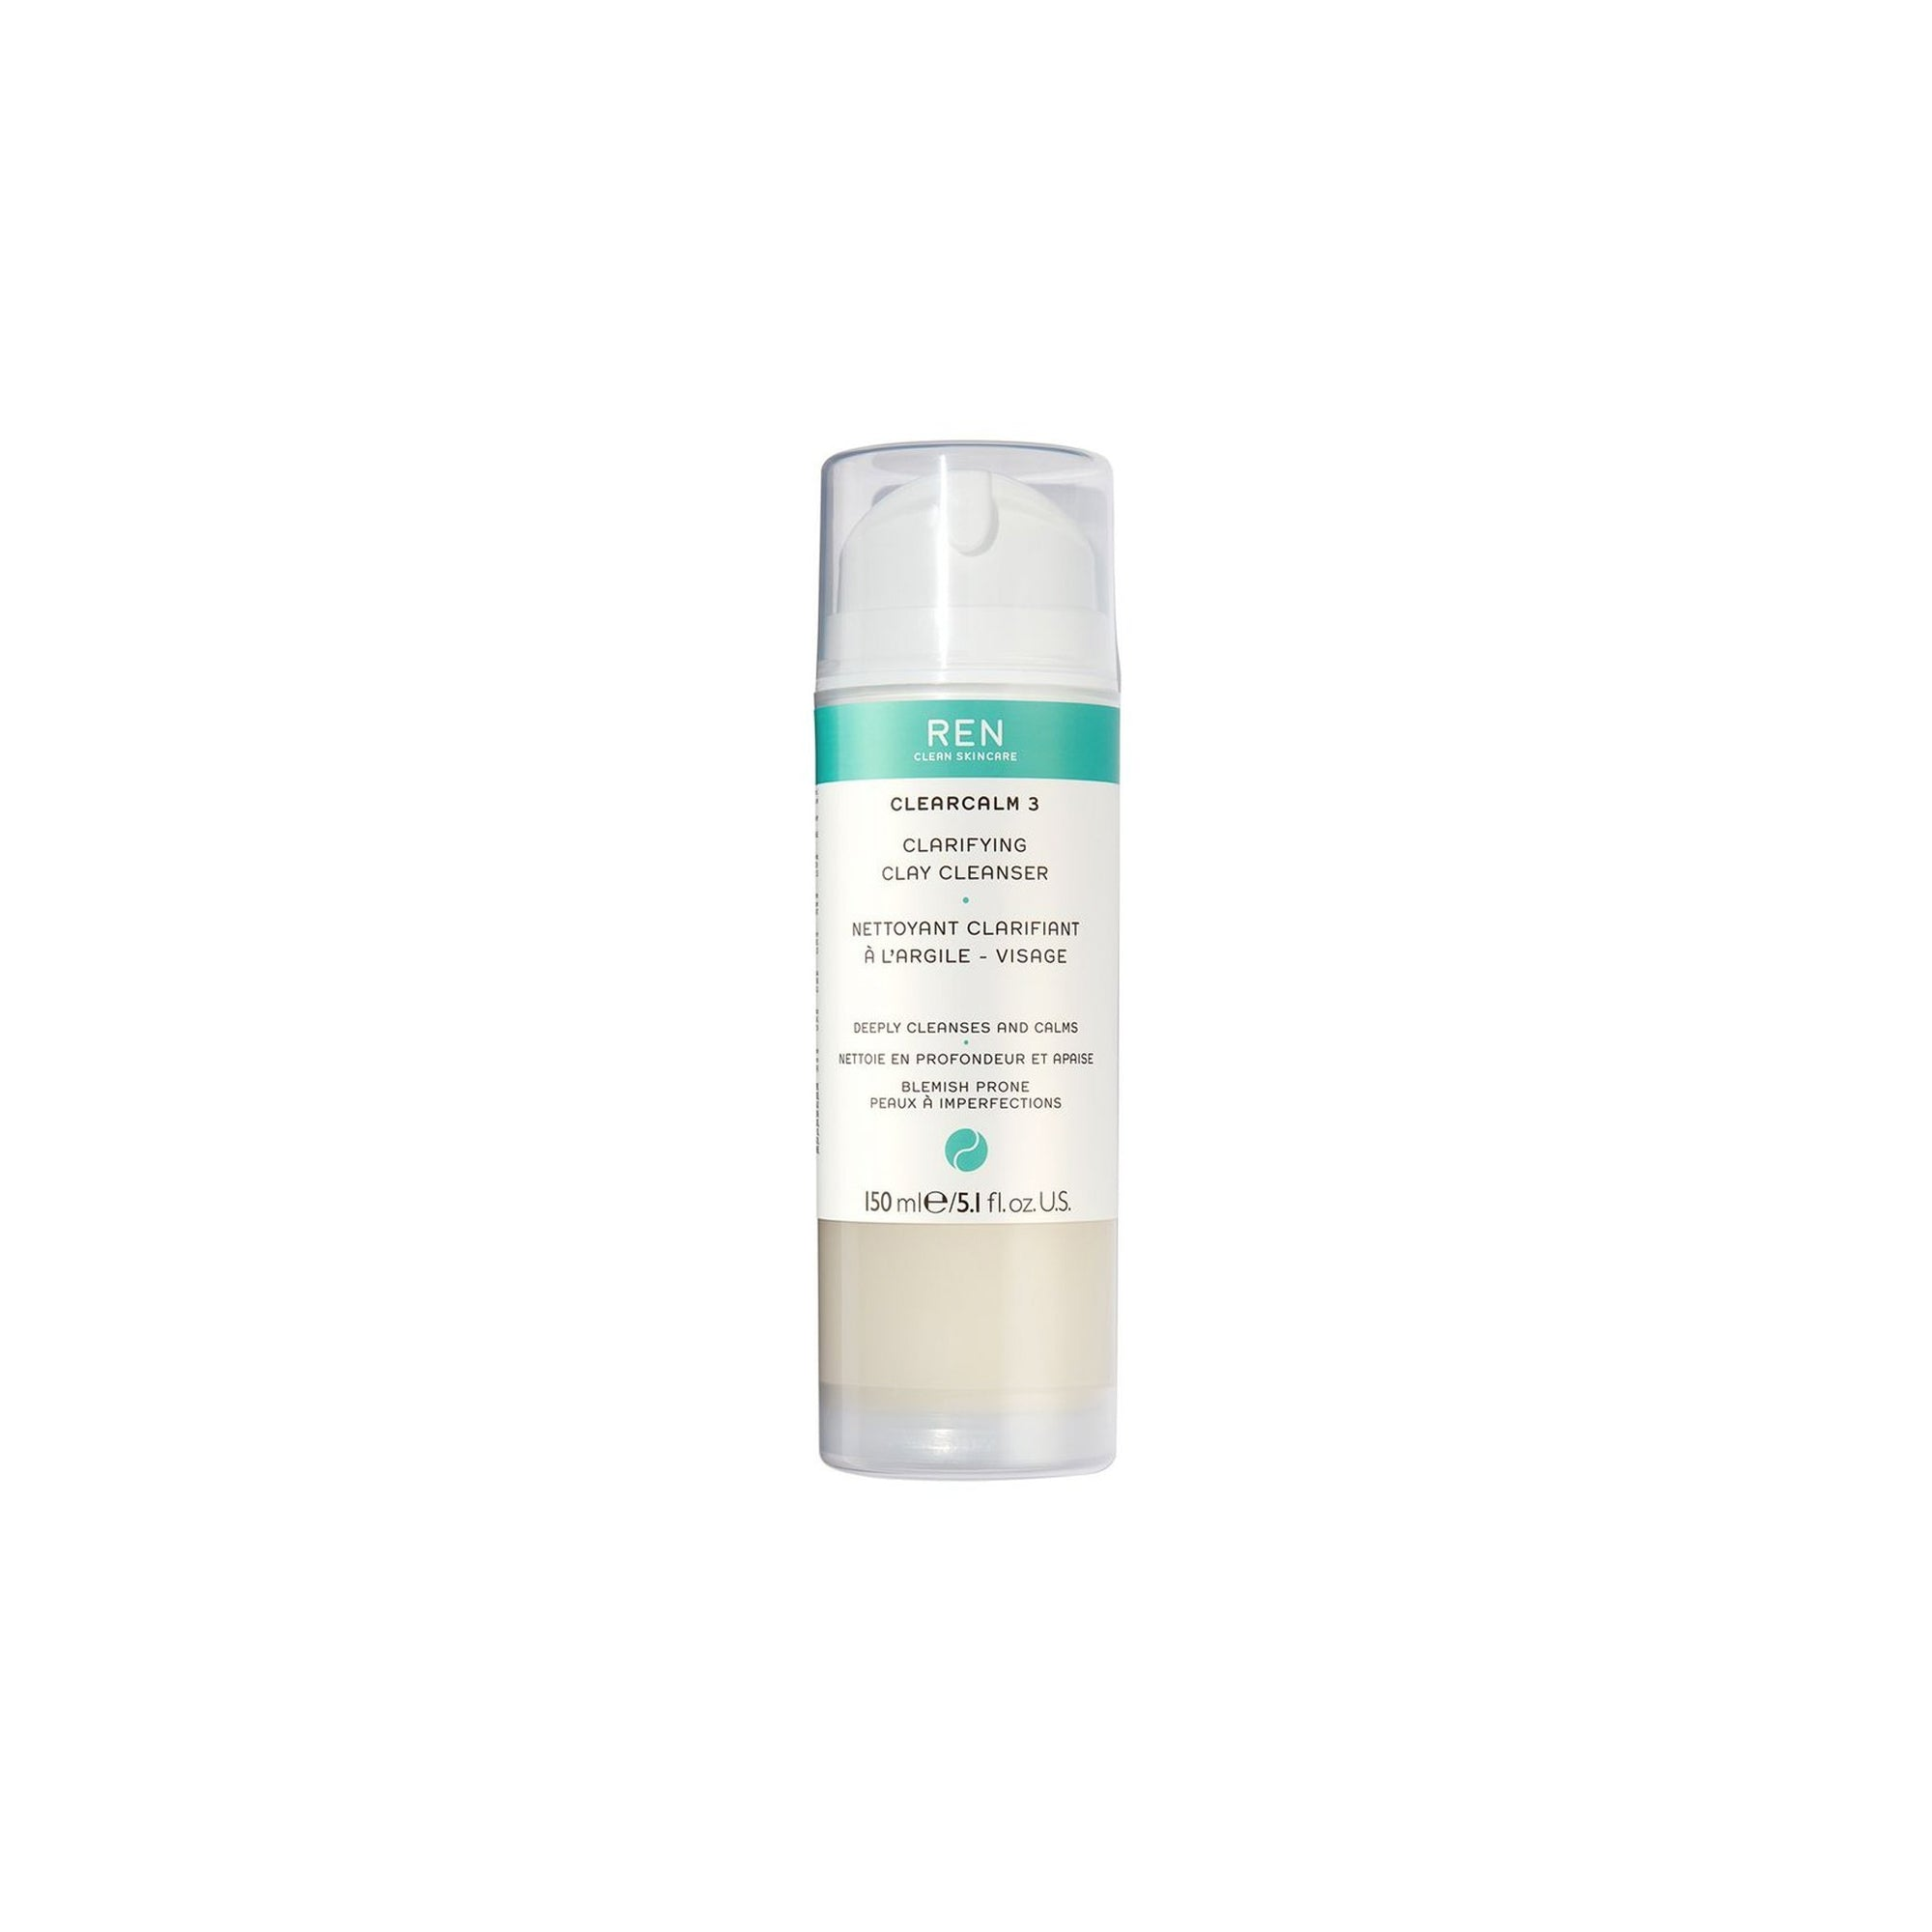 Ren Clear Clarifying Clay Cleanser 150ml